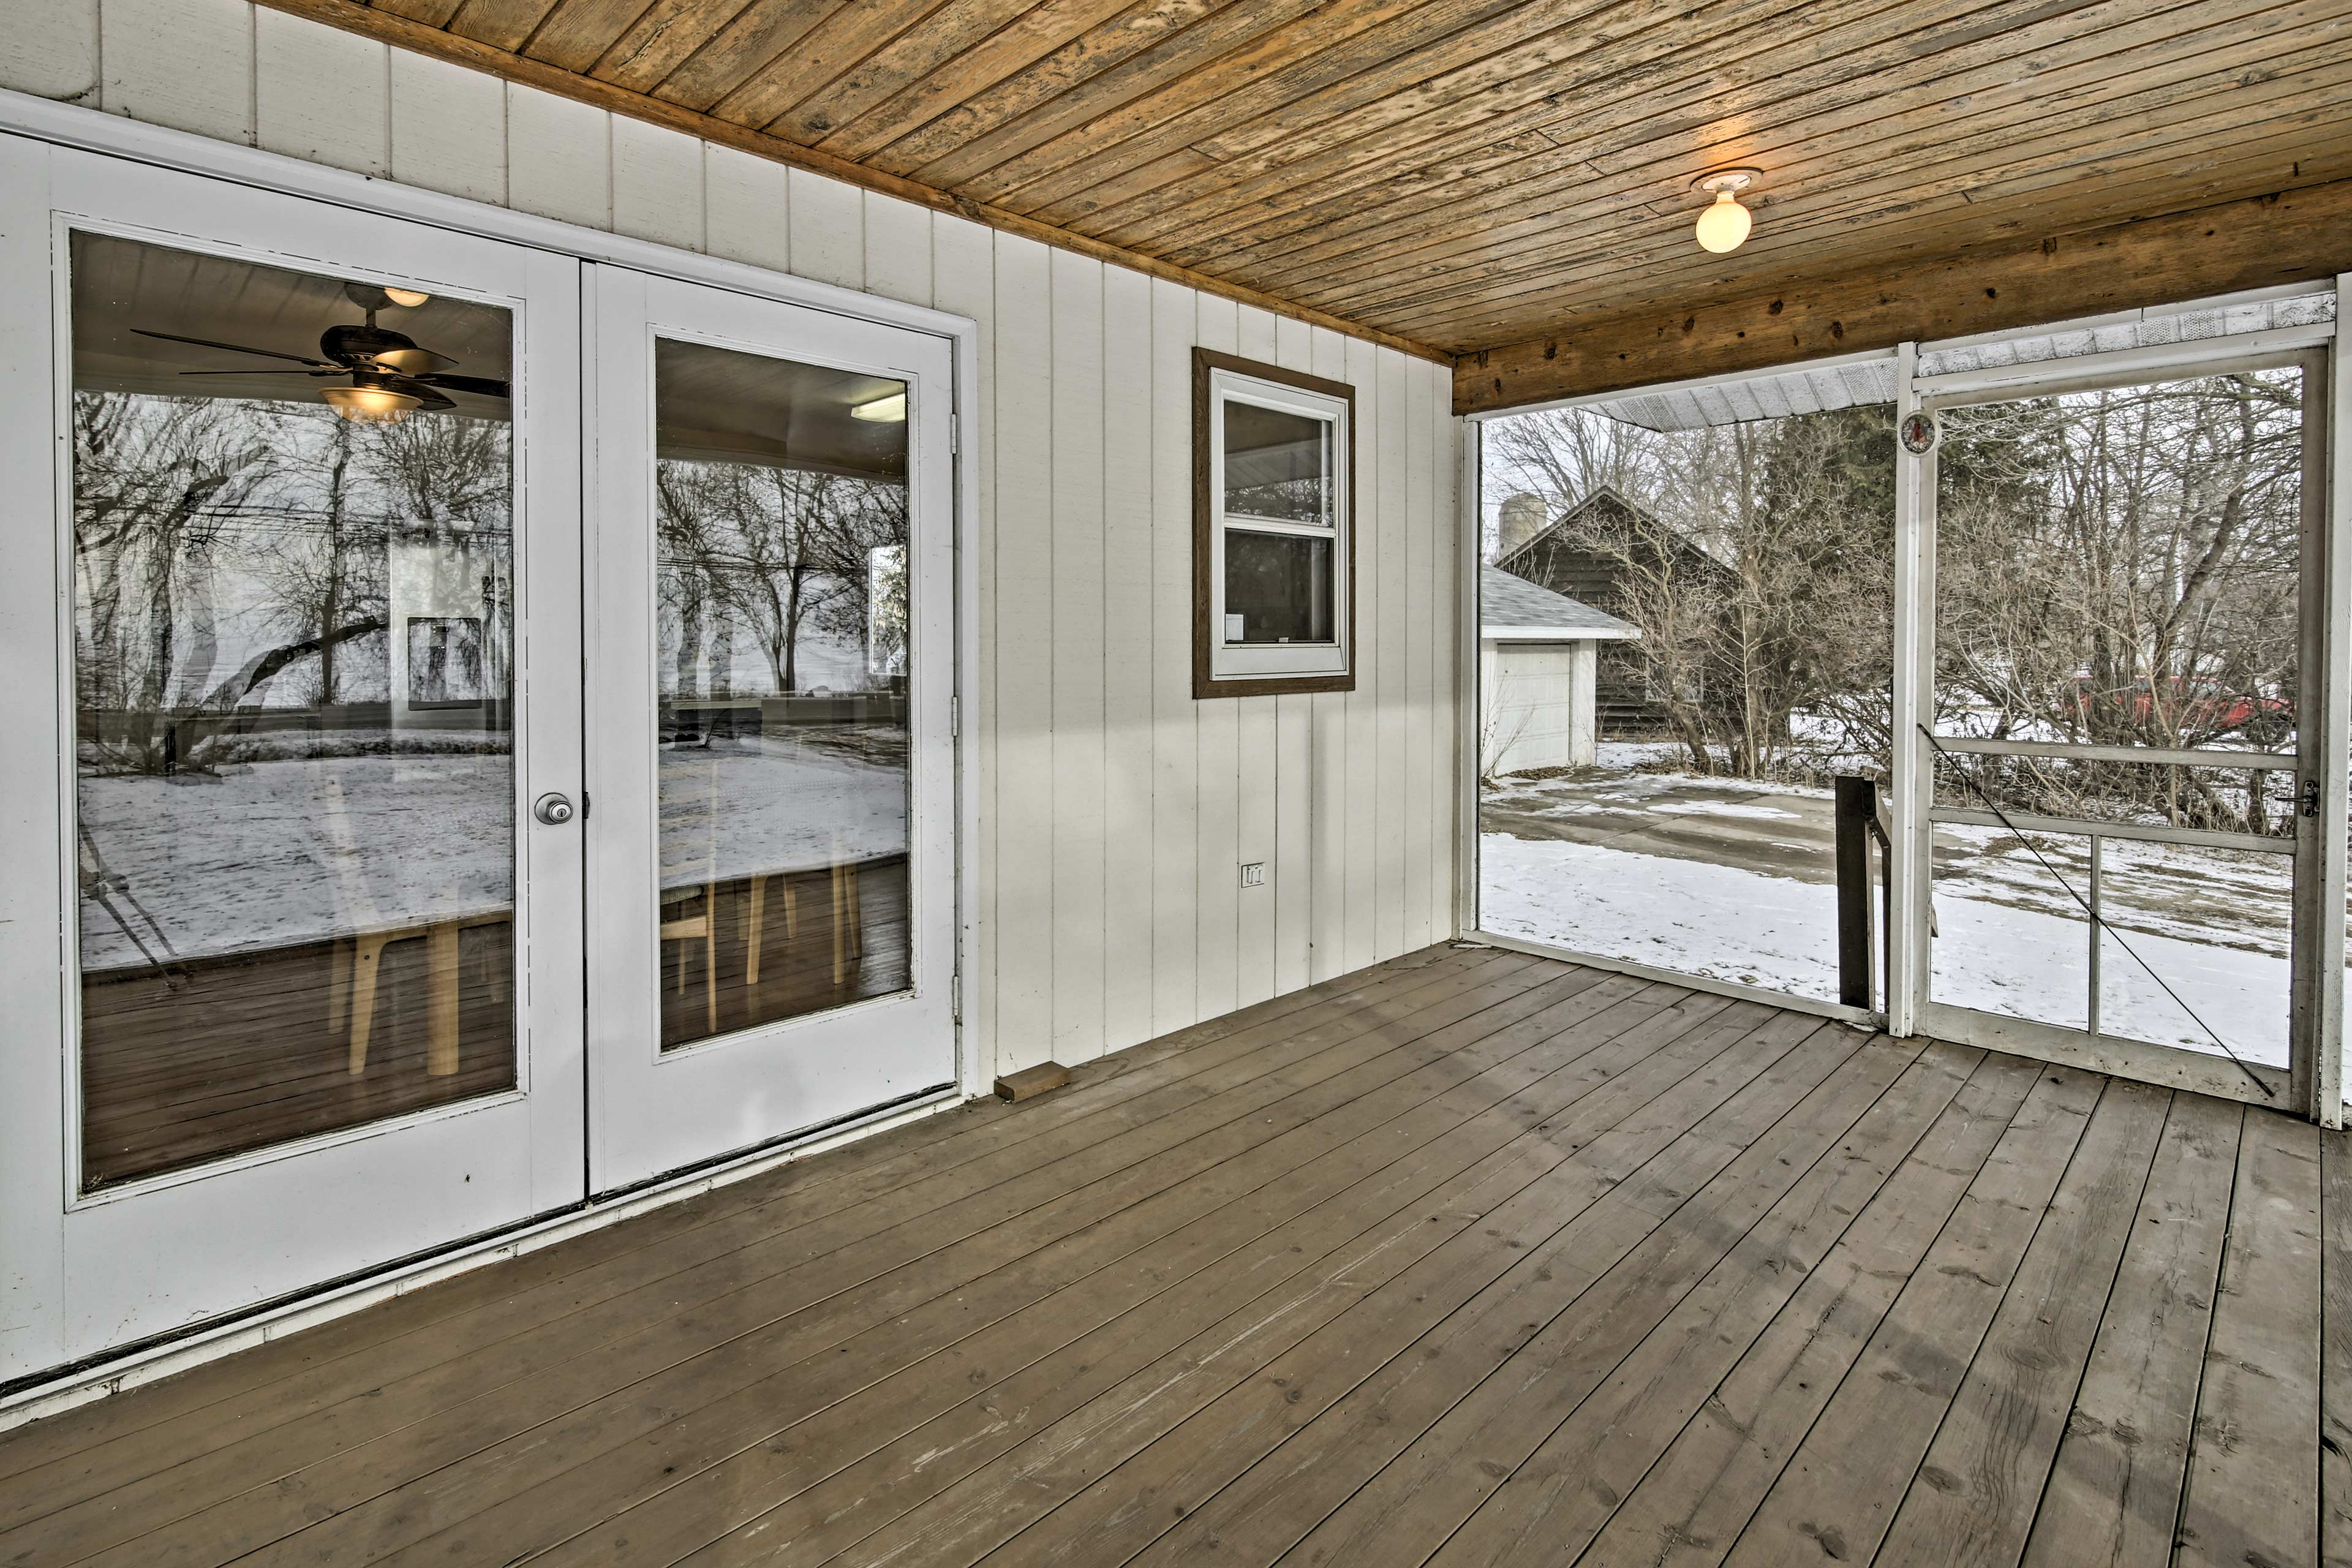 The screened-in porch lets you relax in the warm Wisconsin evenings.